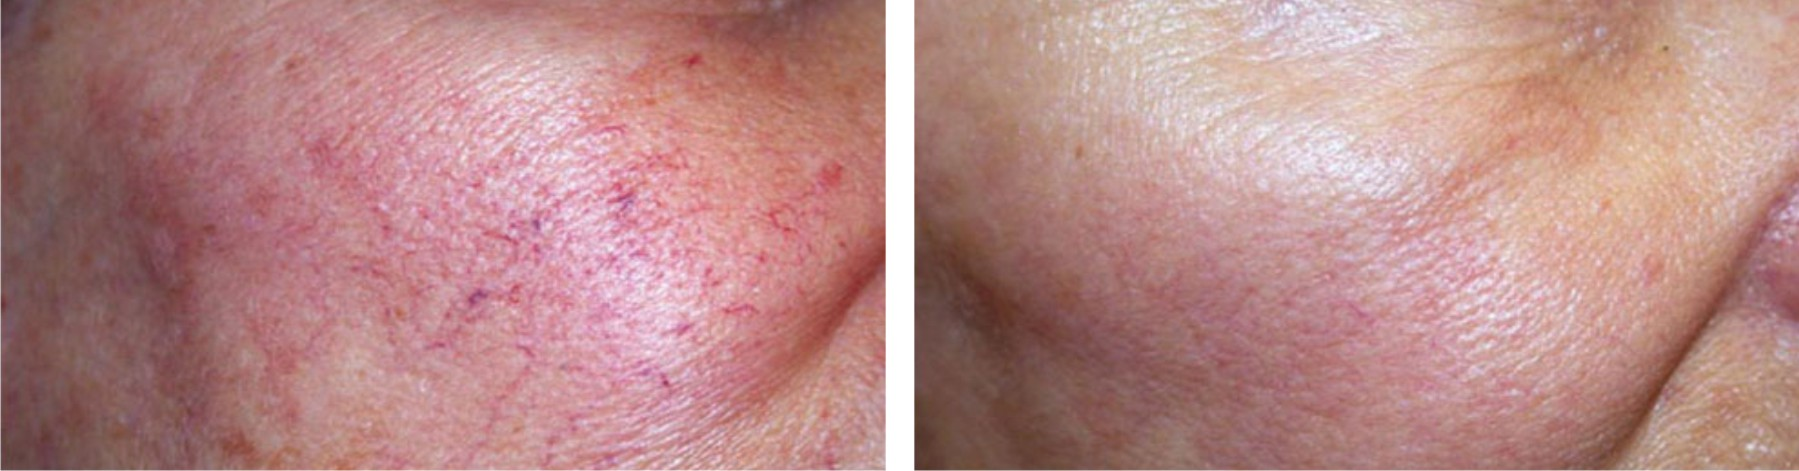 Laser Skin Rejuvenation Image One